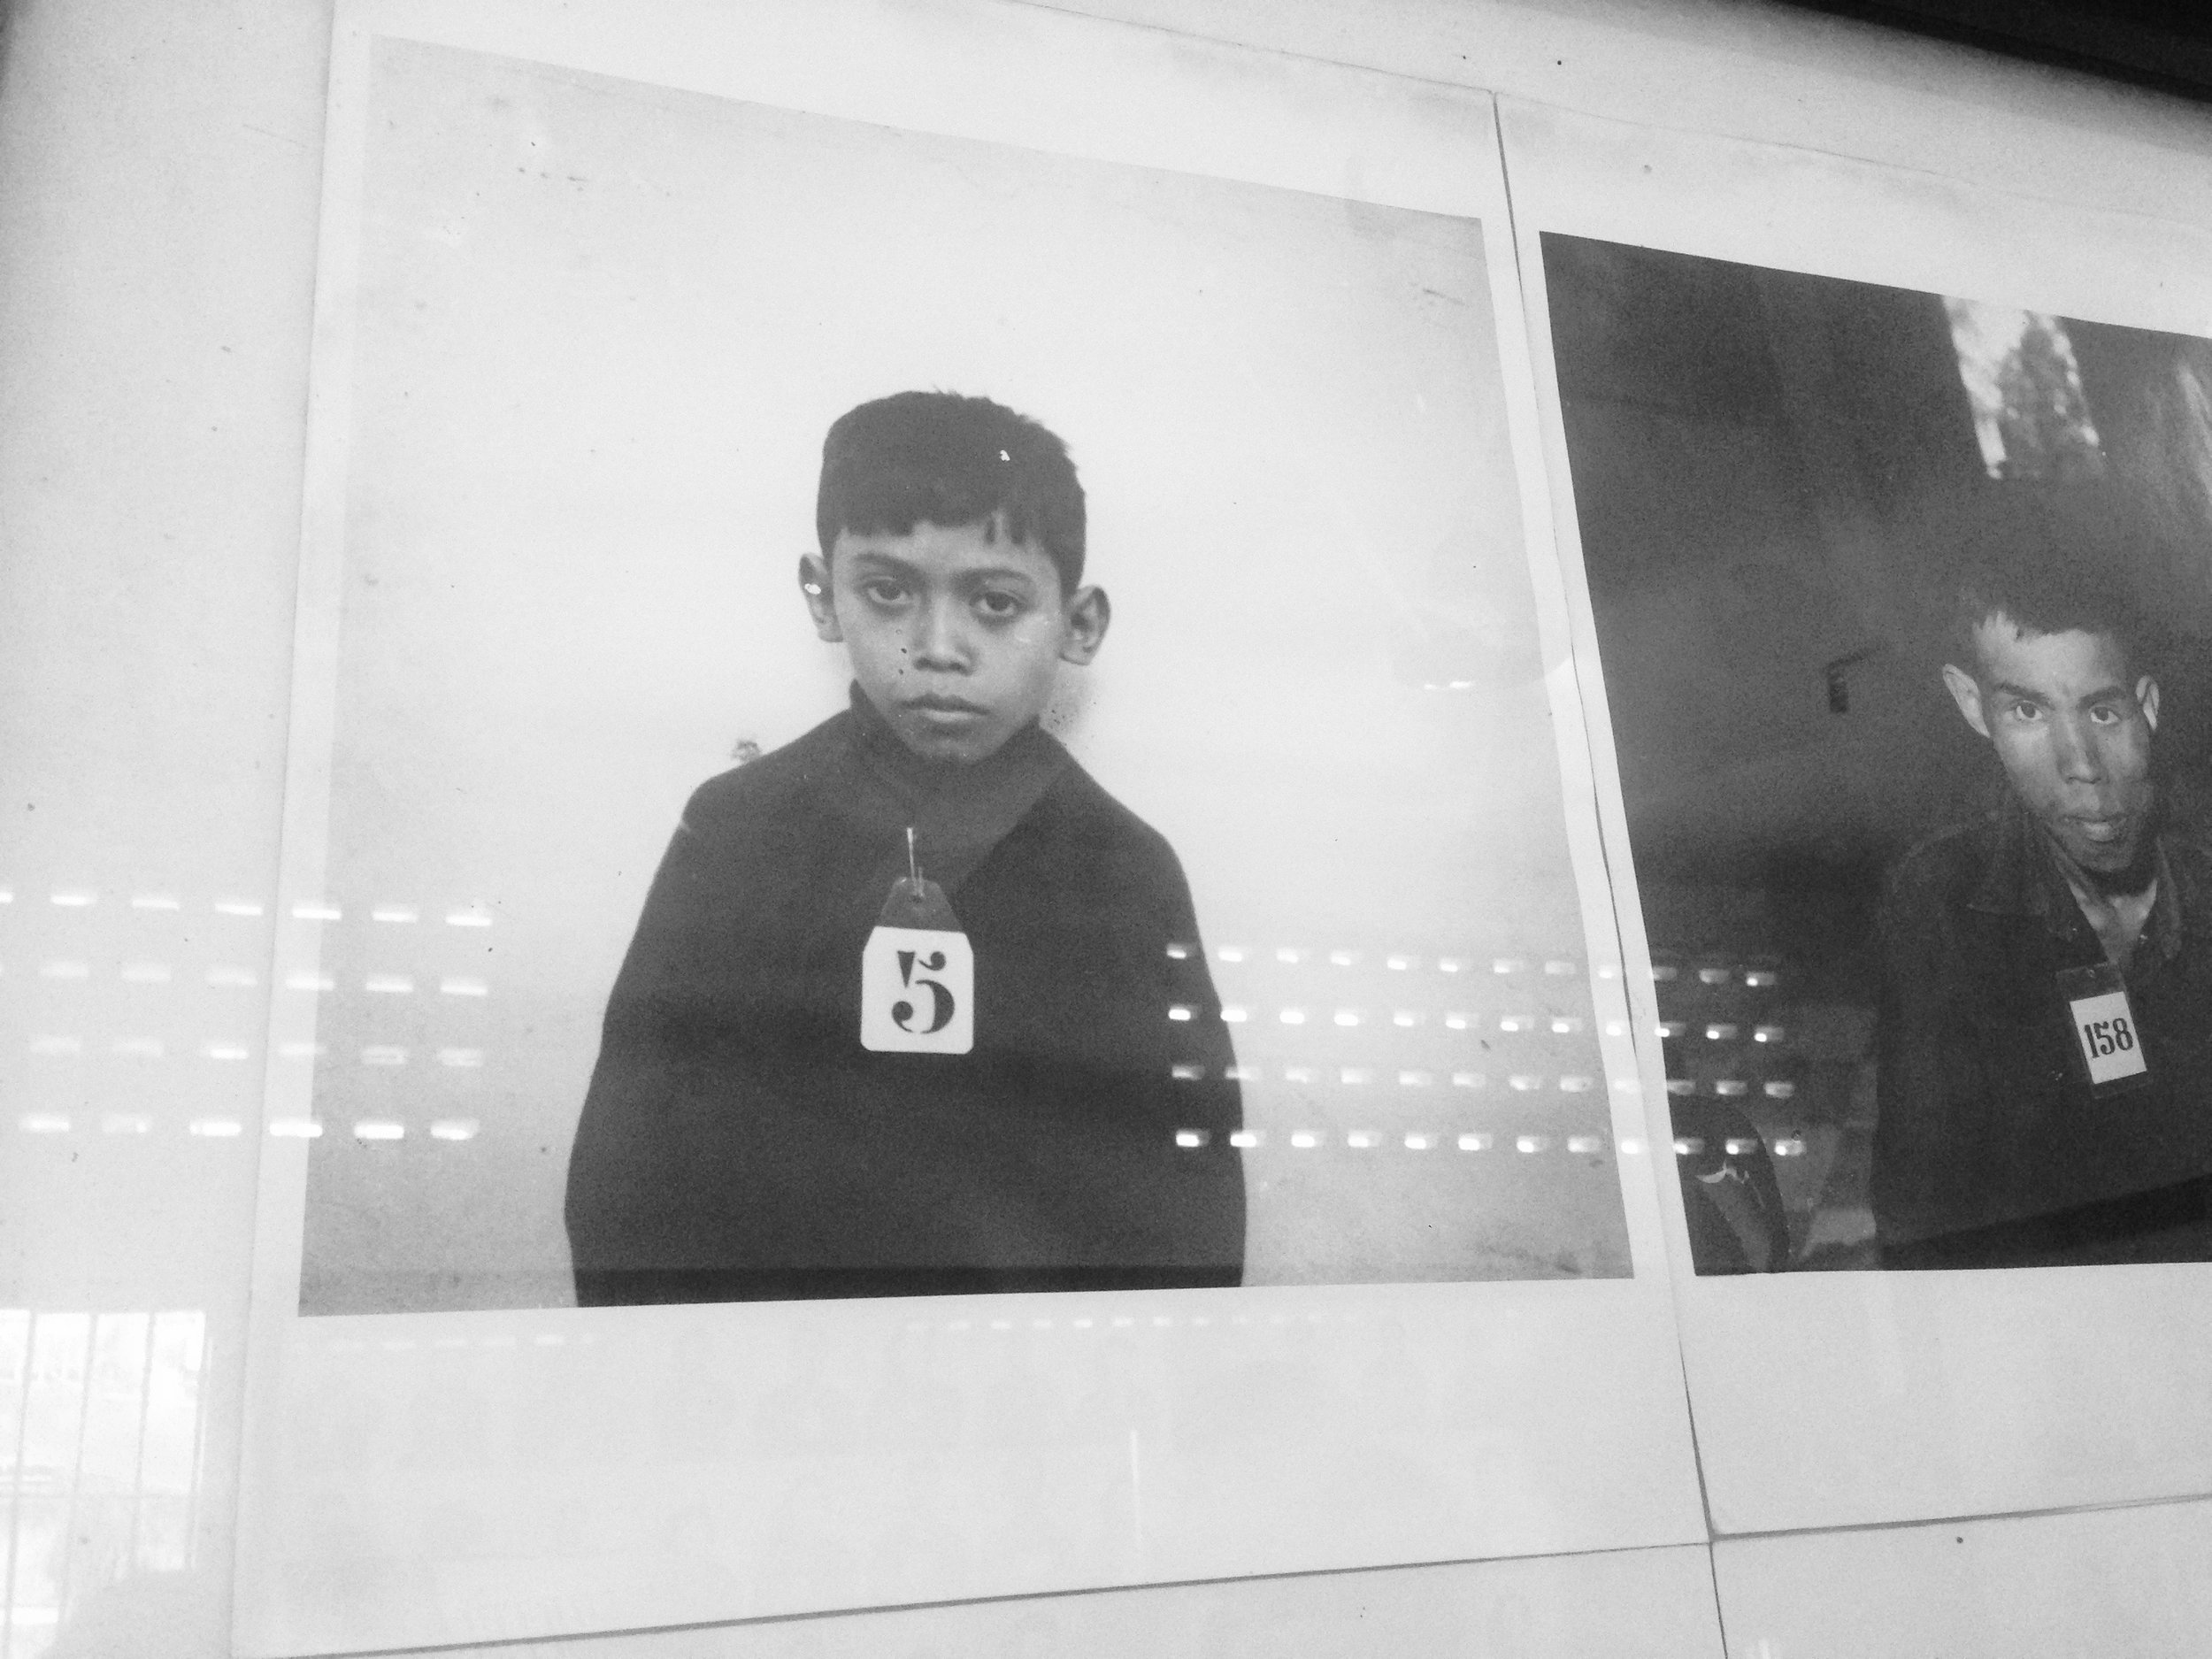 All prisoners are photographed upon arrival at the detention center, including babies, children and mothers.